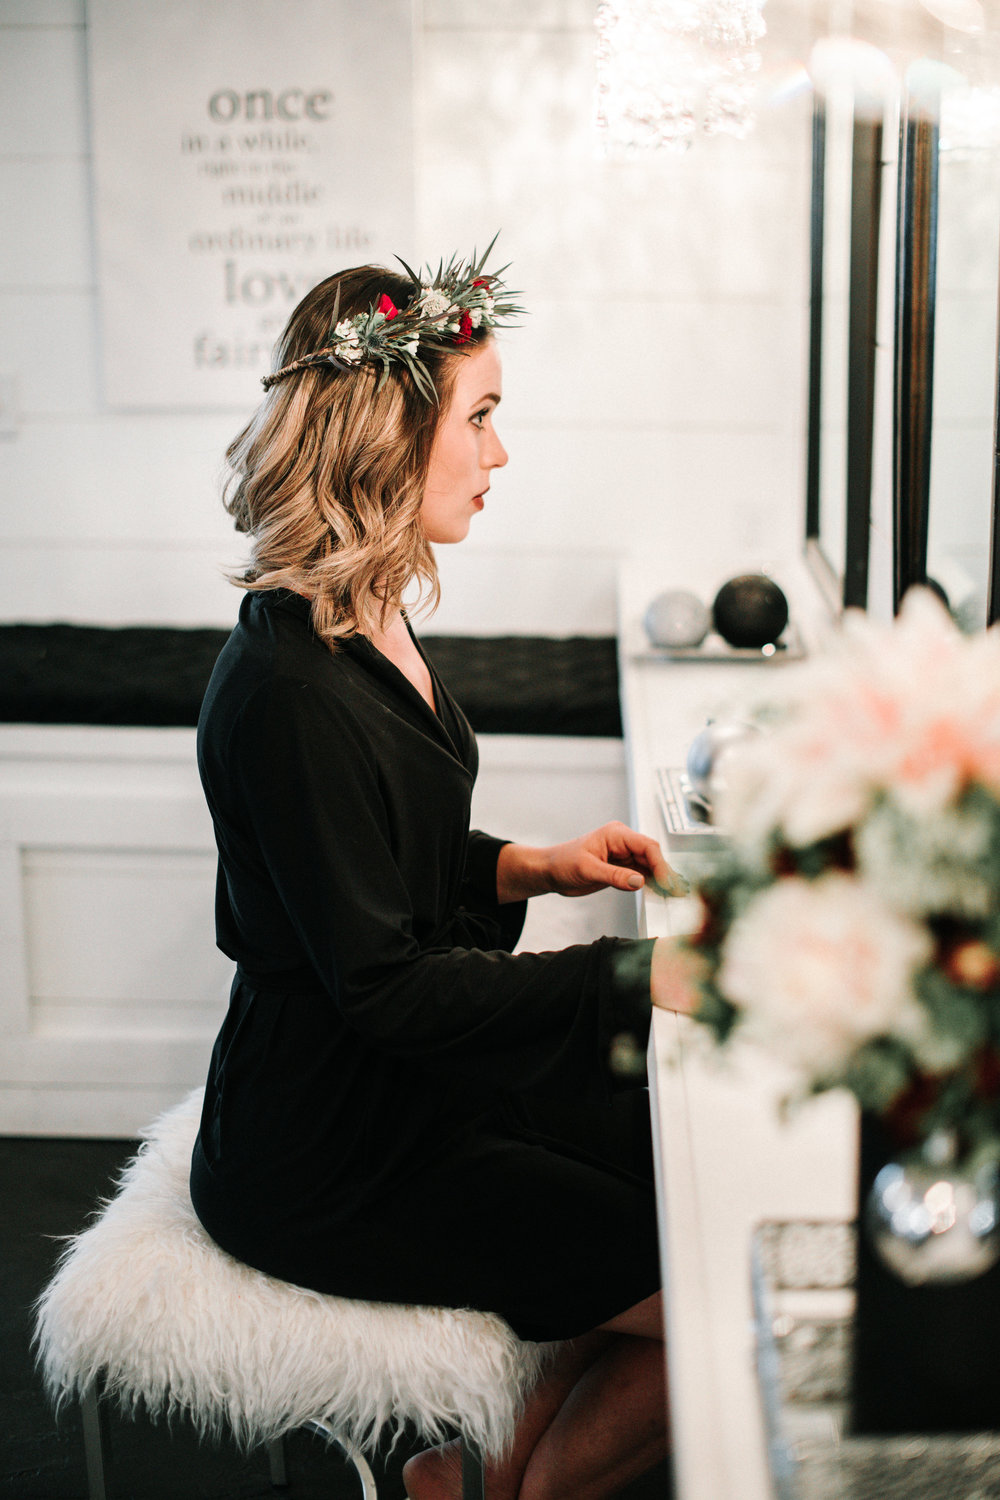 boho chic winter wedding by Breanna Kay Photography for Destination Wisconsin Wedding BLog